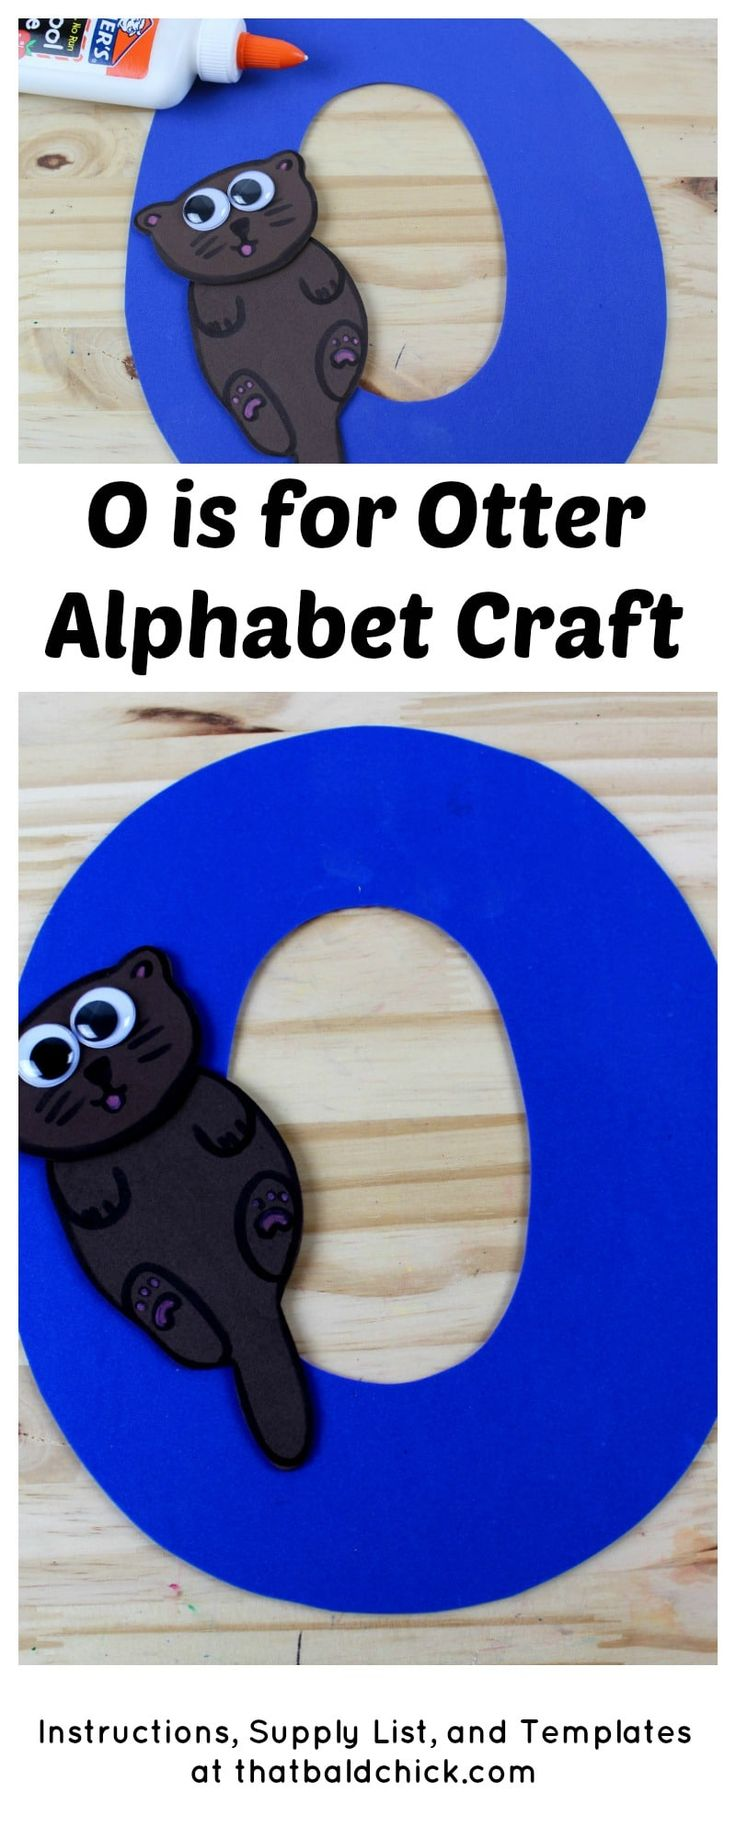 O is for Otter Alphabet Craft - supply list, instructions, and templates at thatbaldchick.com